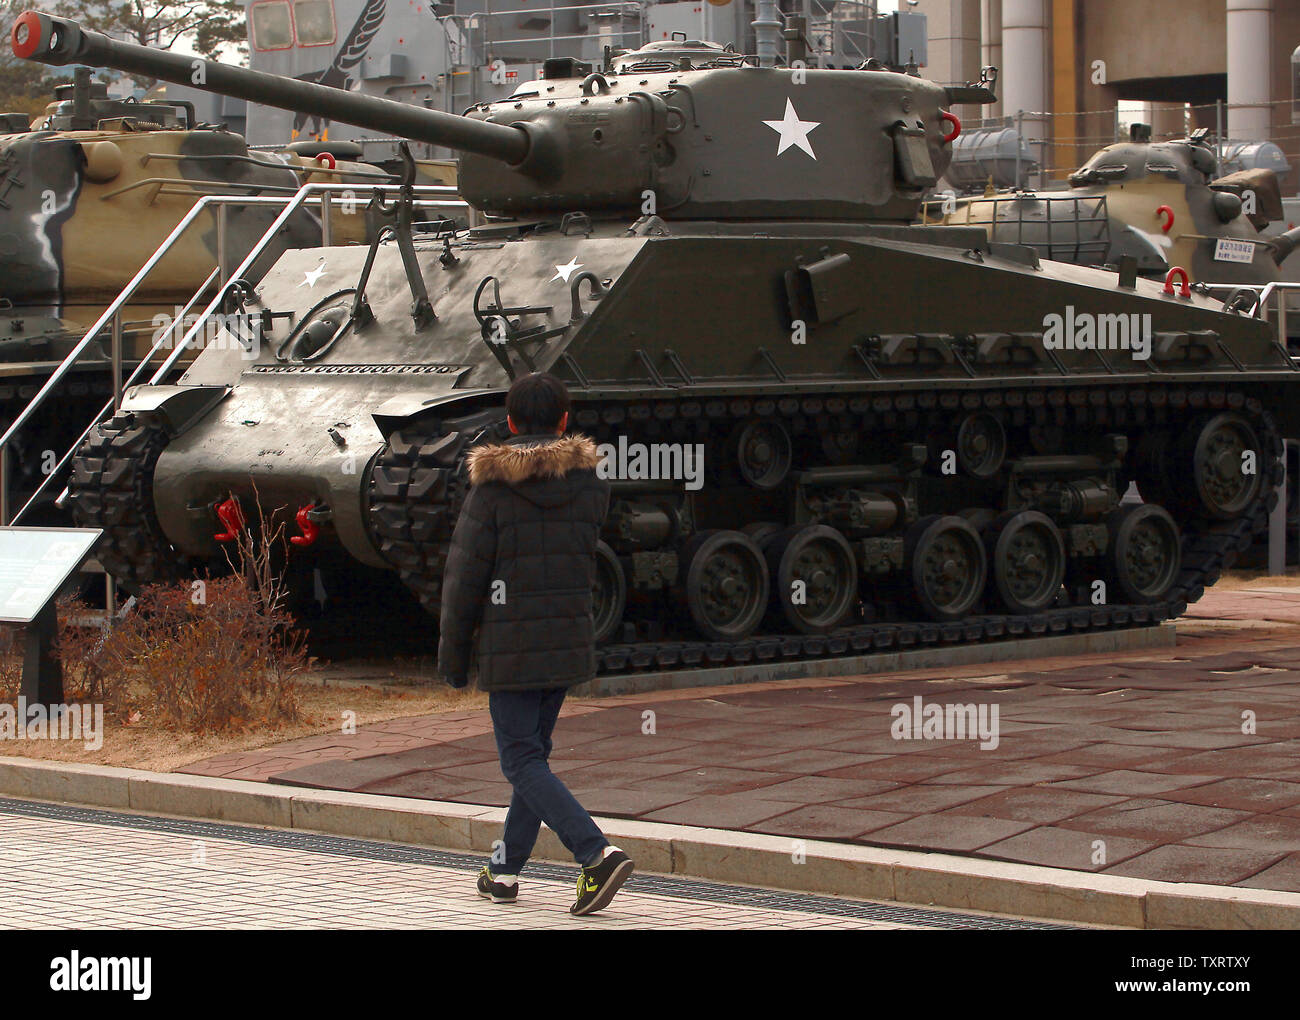 """A South Korean walks by a Sherman tank on display at the War Memorial of Korea in Seoul on January 28, 2013.   North Korea said last week that it plans to carry out a new nuclear test and more long-range rocket launches, all of which it said are part of a new phase of confrontation with the United States.  North Korea also warned of the possibility of """"strong physical counter-measures"""" against South Korea if they support tougher UN sanctions.    UPI/Stephen Shaver Stock Photo"""